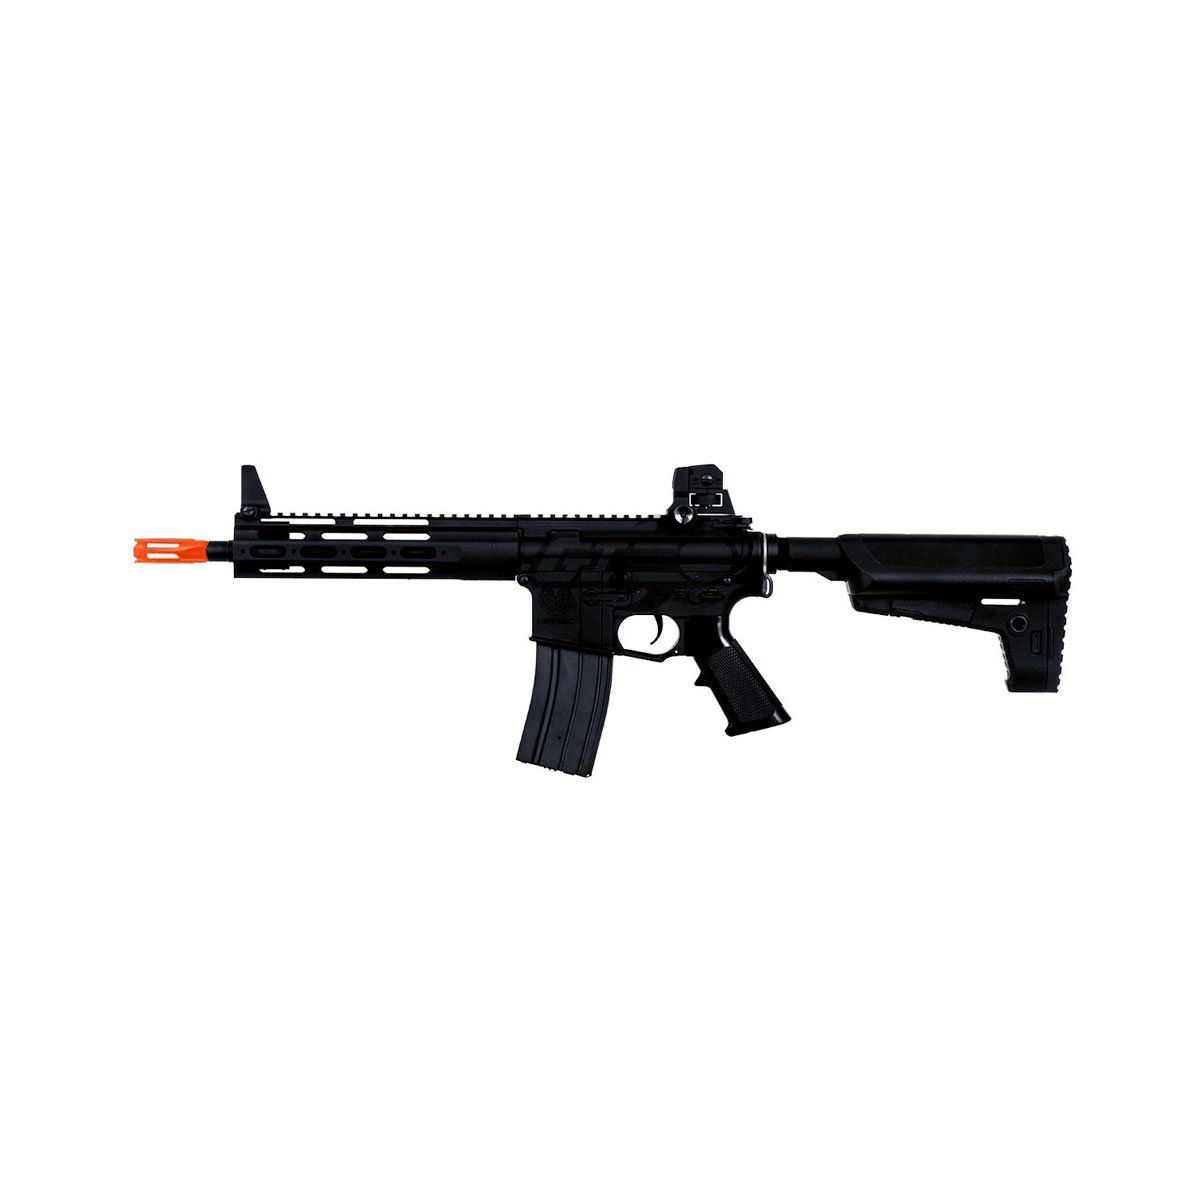 Rifle de Airsoft Krytac Alpha CRB Full Metal Elétrico 6mm